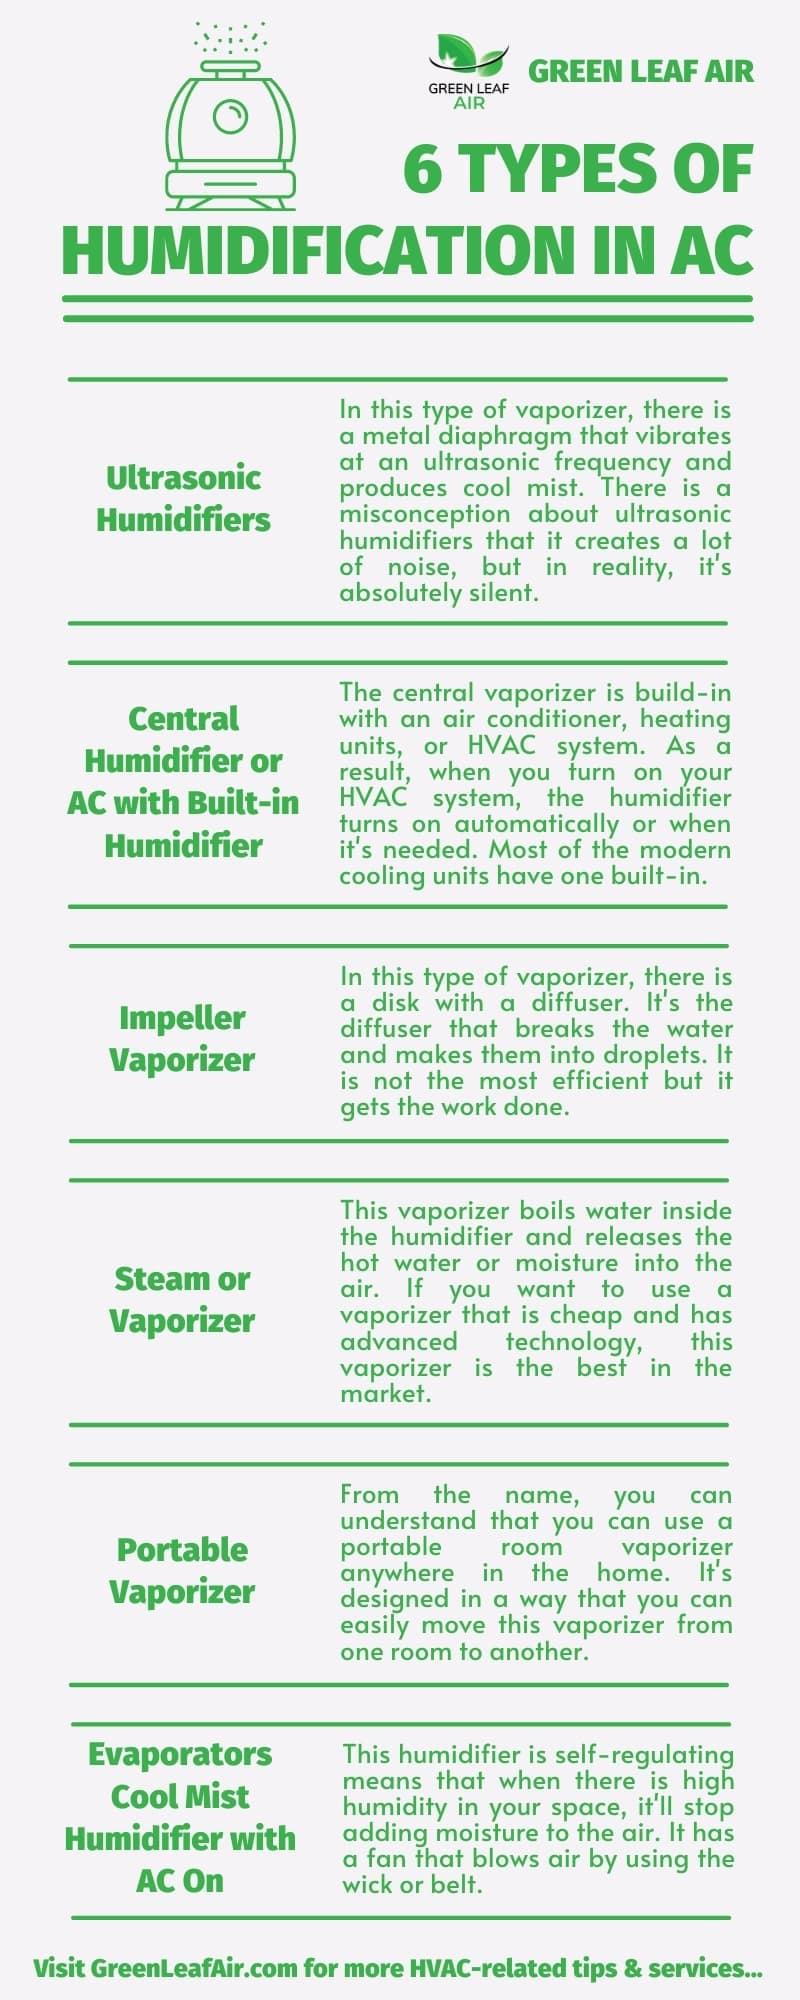 6 Types of Humidification In AC